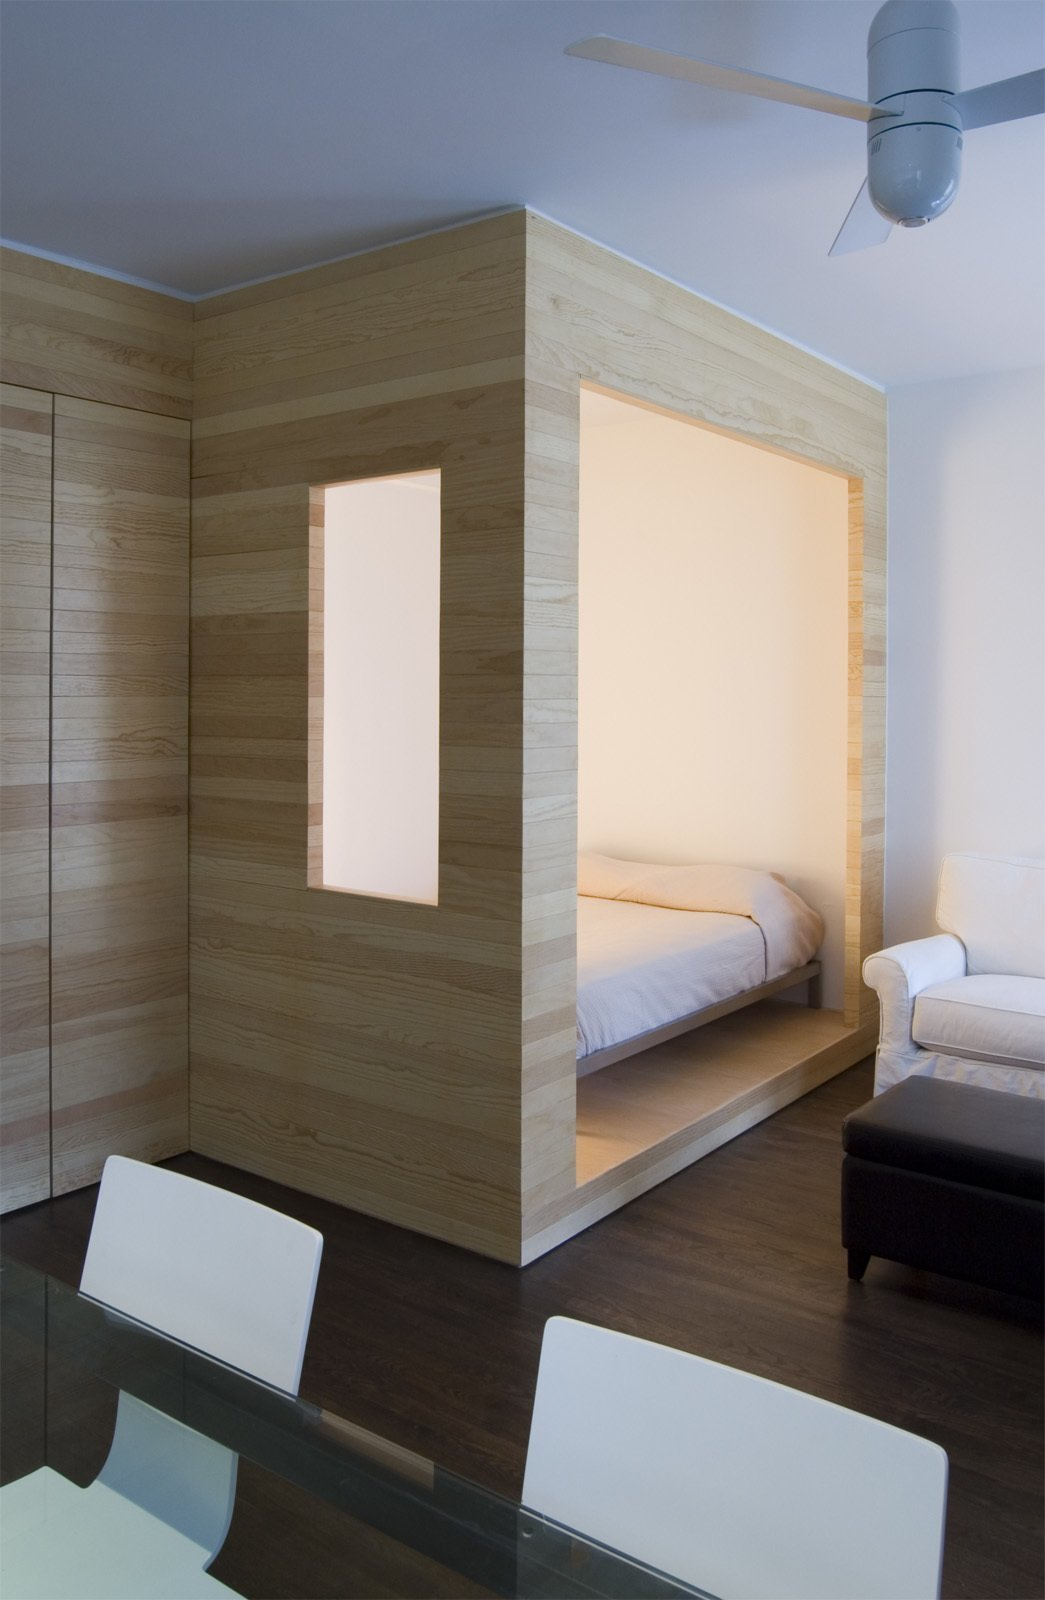 Framework Architecture created a partially enclosed sleeping nook in this tiny Brooklyn studio apartment, which snuggly fits a full-sized bed. Tagged: Bedroom, Bed, Accent Lighting, Dark Hardwood Floor, and Chair.  Photo 4 of 11 in 11 Hidden Beds in Small Homes